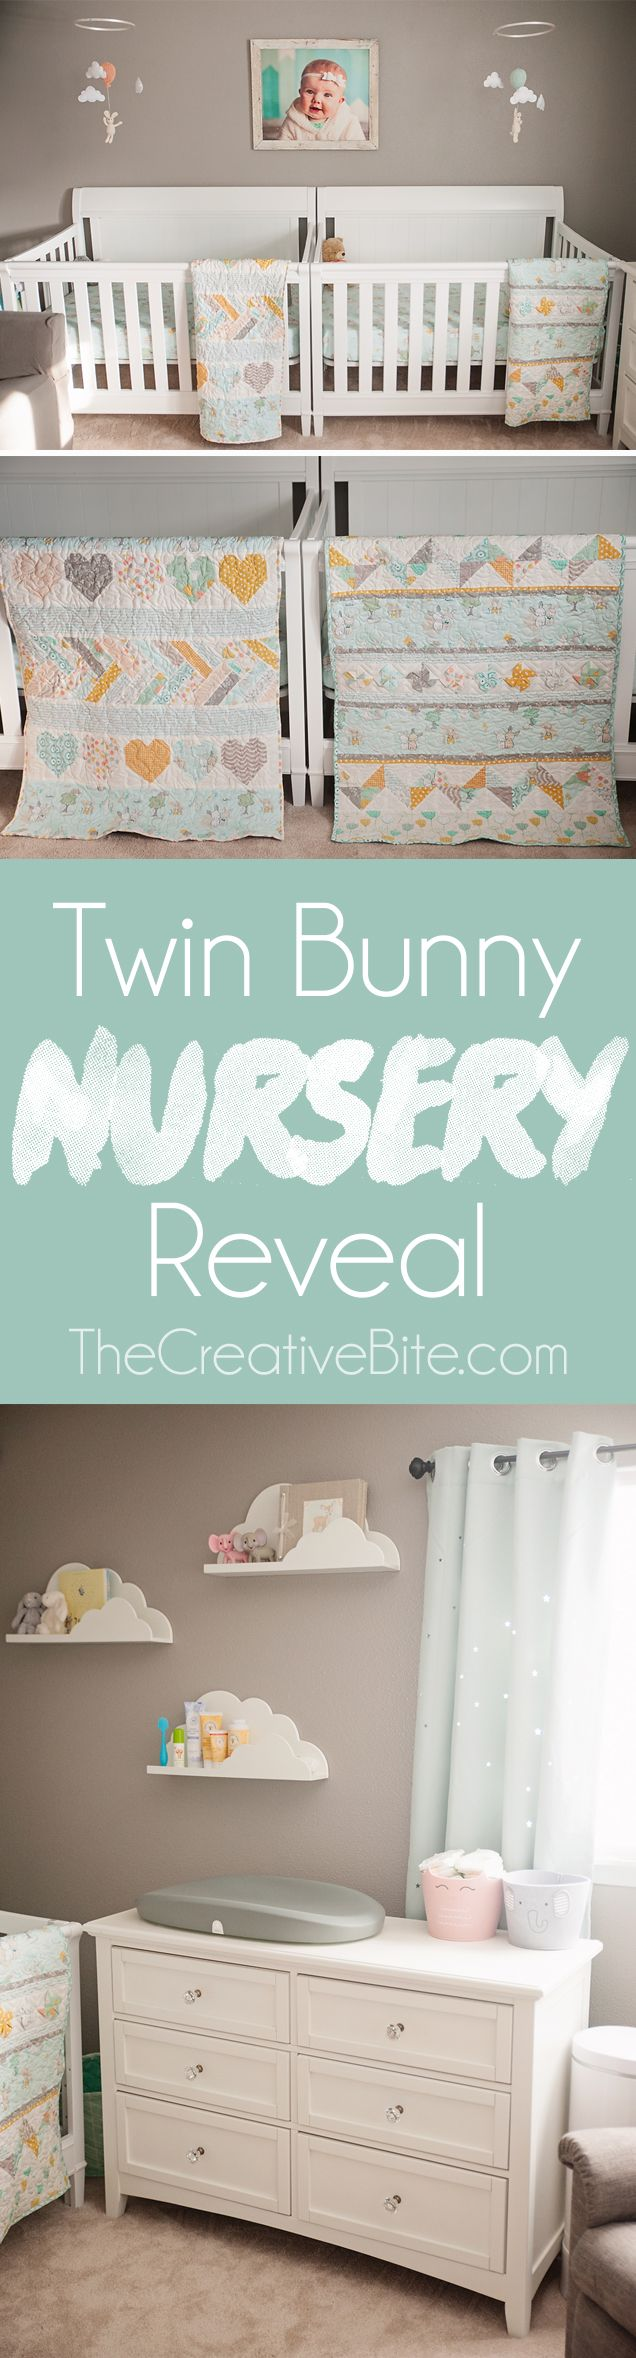 Sharing our Gender Neutral Twin Bunny Nursery Reveal, a beautiful baby room full of soft colors, perfect for our boy & girl twins! #Twins #Nursery #GenderNeutral